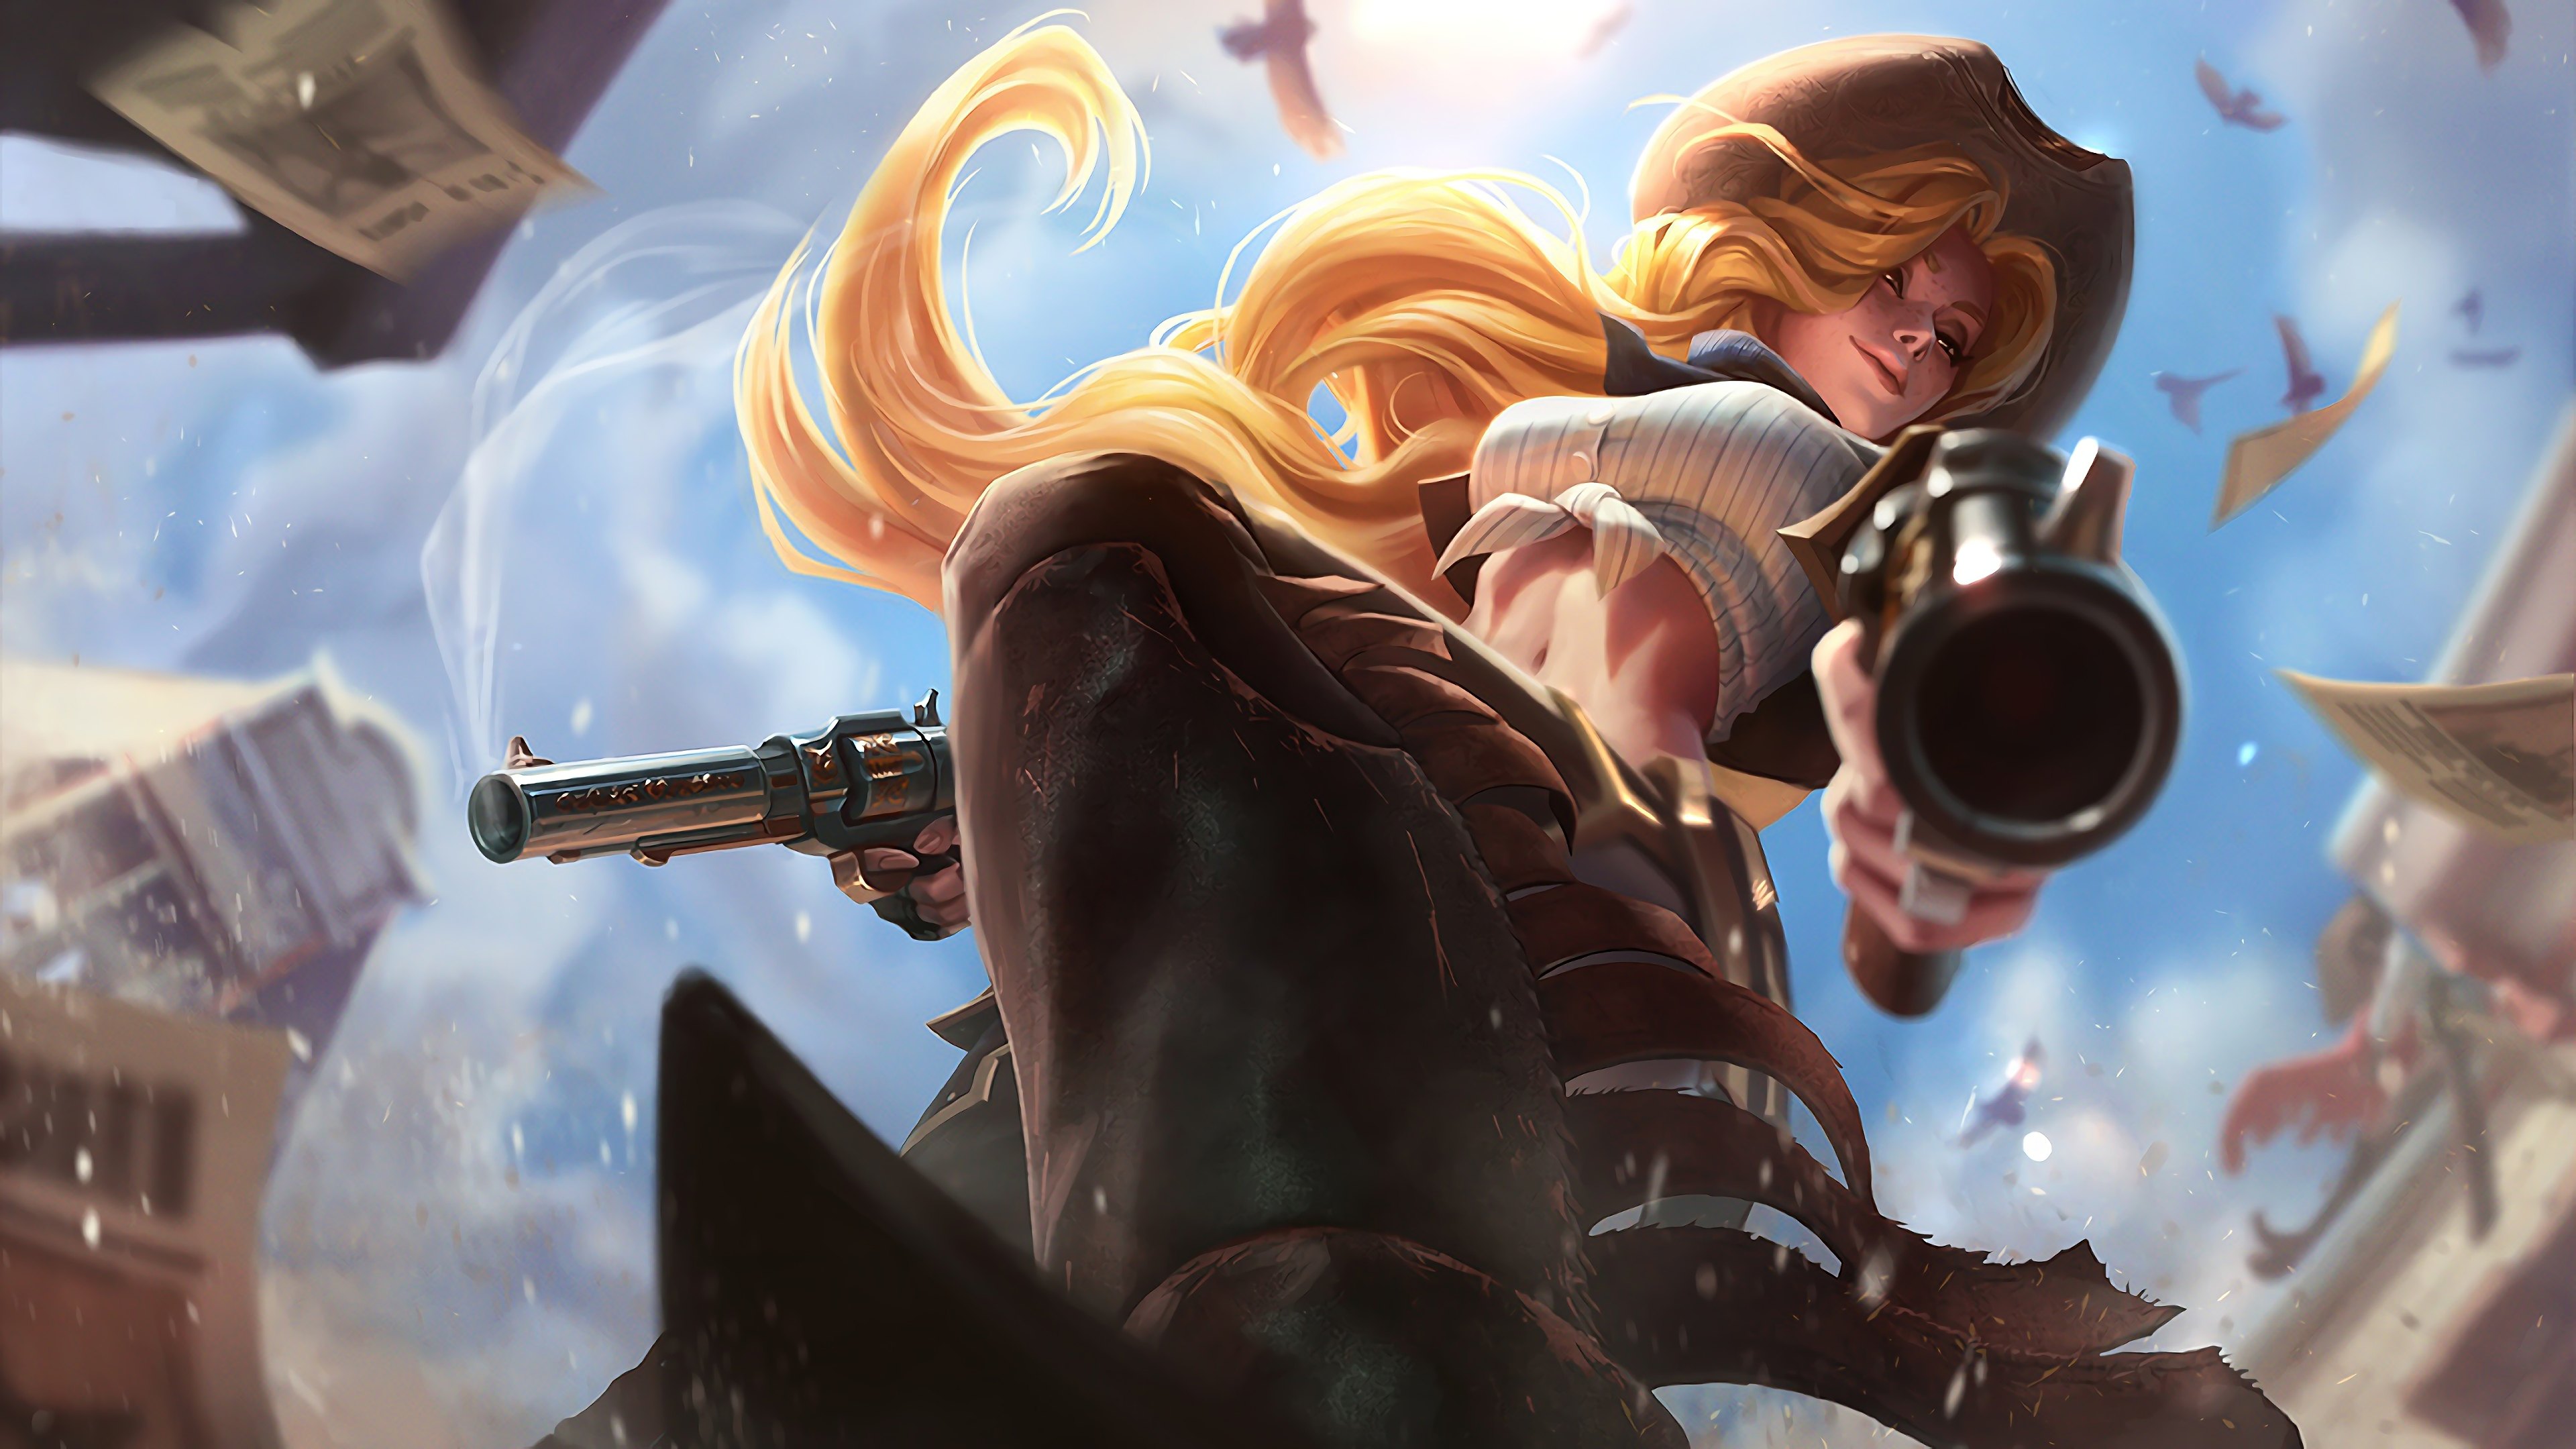 cowgirl miss fortune lol splash art league of legends lol 1574102784 - Cowgirl Miss Fortune LoL Splash Art League of Legends lol - Miss Fortune, league of legends, High Noon - League of Legends